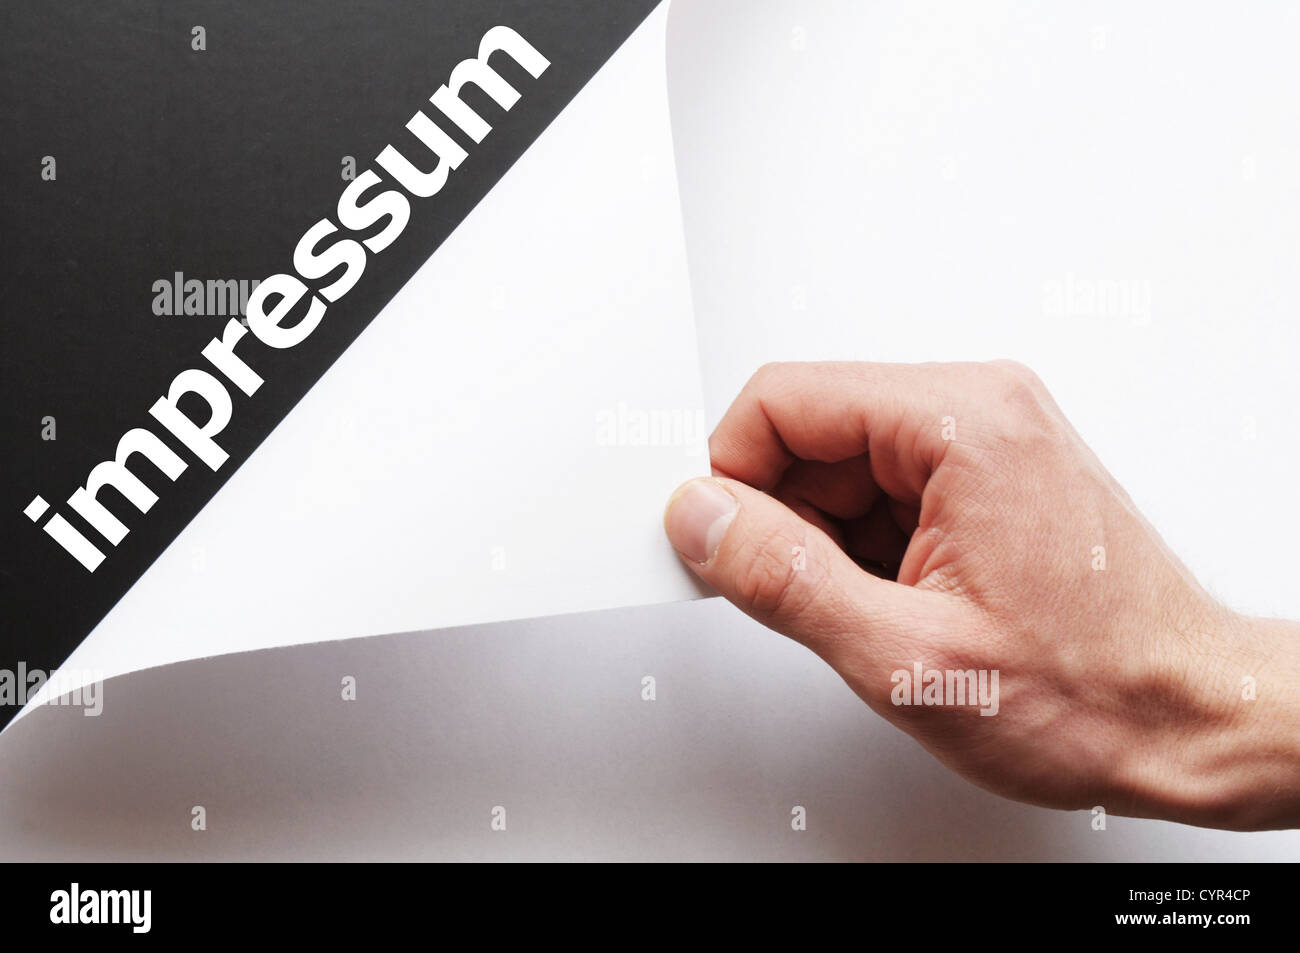 impressum concept with hand word and paper - Stock Image